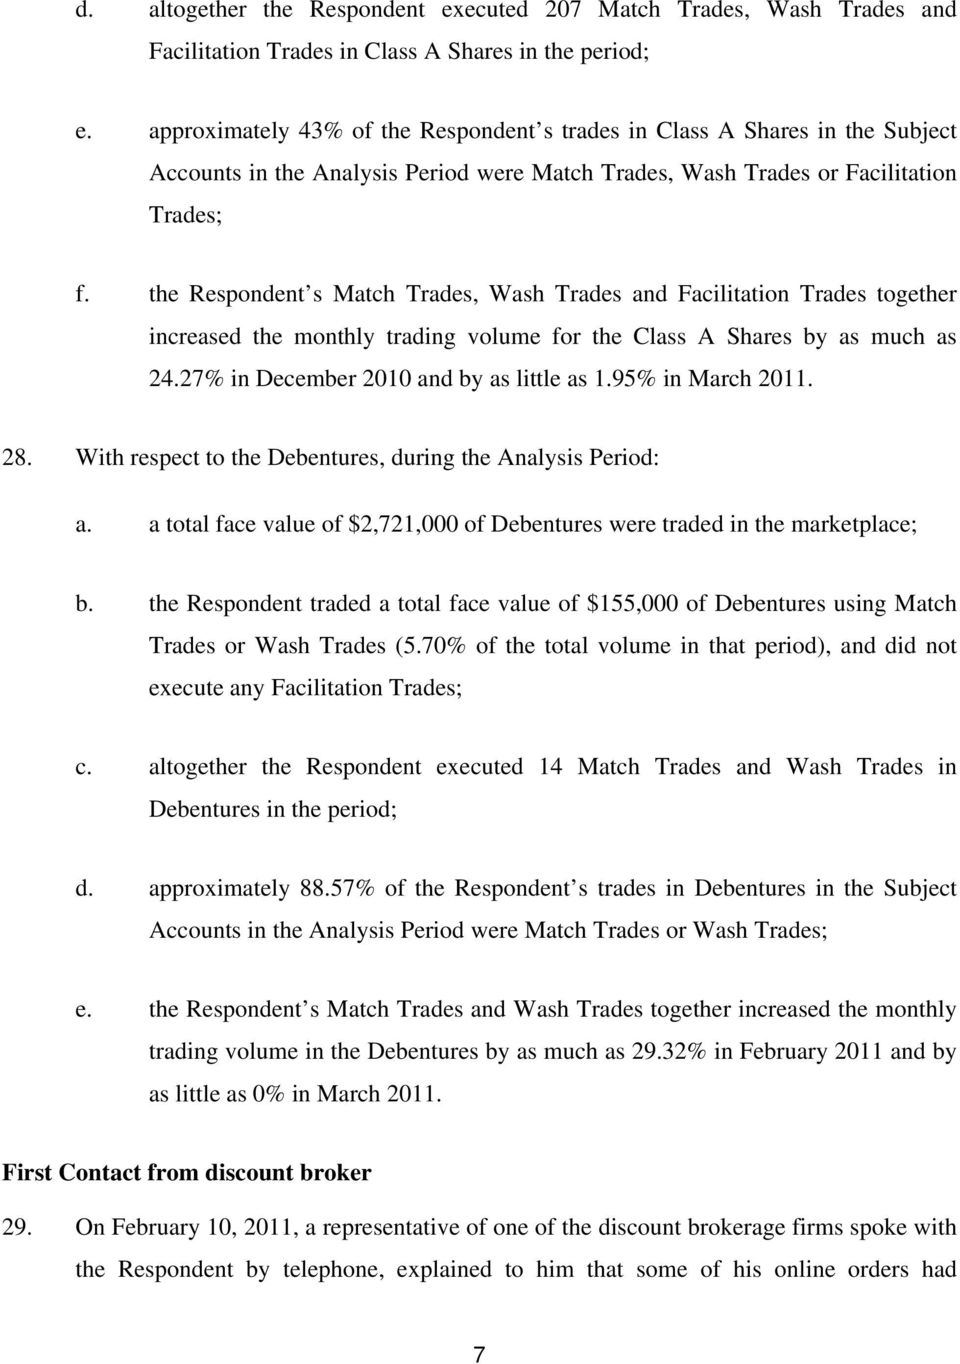 the Respondent s Match Trades, Wash Trades and Facilitation Trades together increased the monthly trading volume for the Class A Shares by as much as 24.27% in December 2010 and by as little as 1.